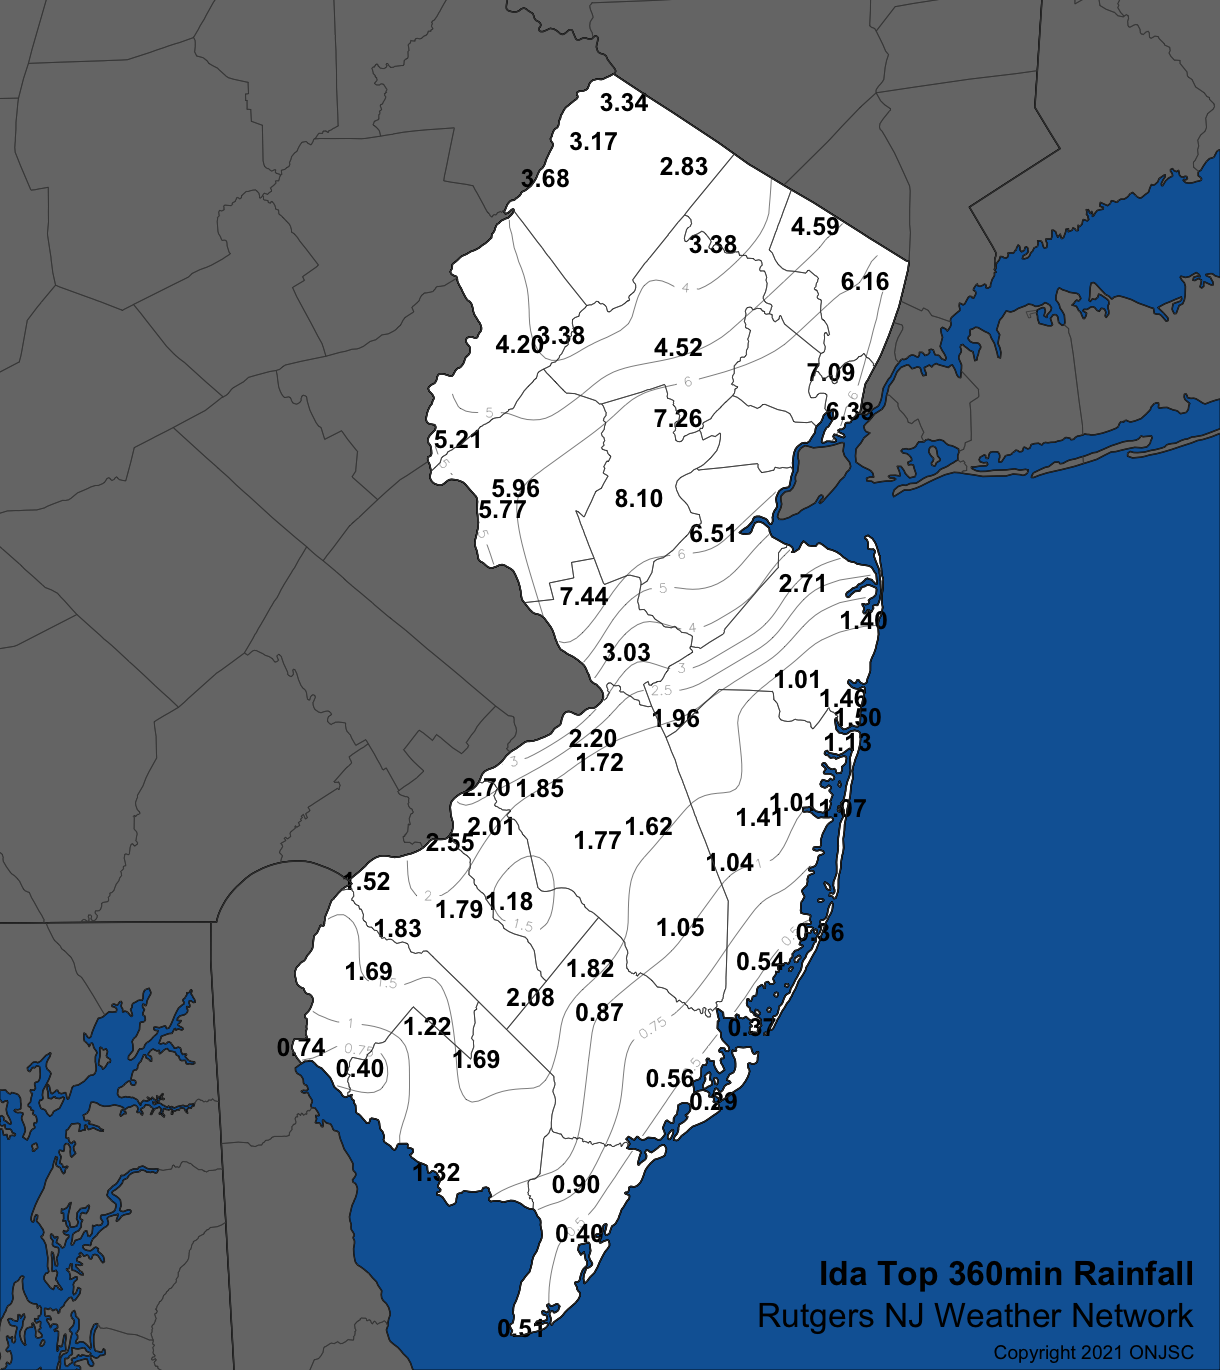 Peak six-hour rainfall across NJ based on observations from Rutgers NJ Weather Network stations and the Newark Airport NWS station. See the text for a further explanation of how values were calculated.